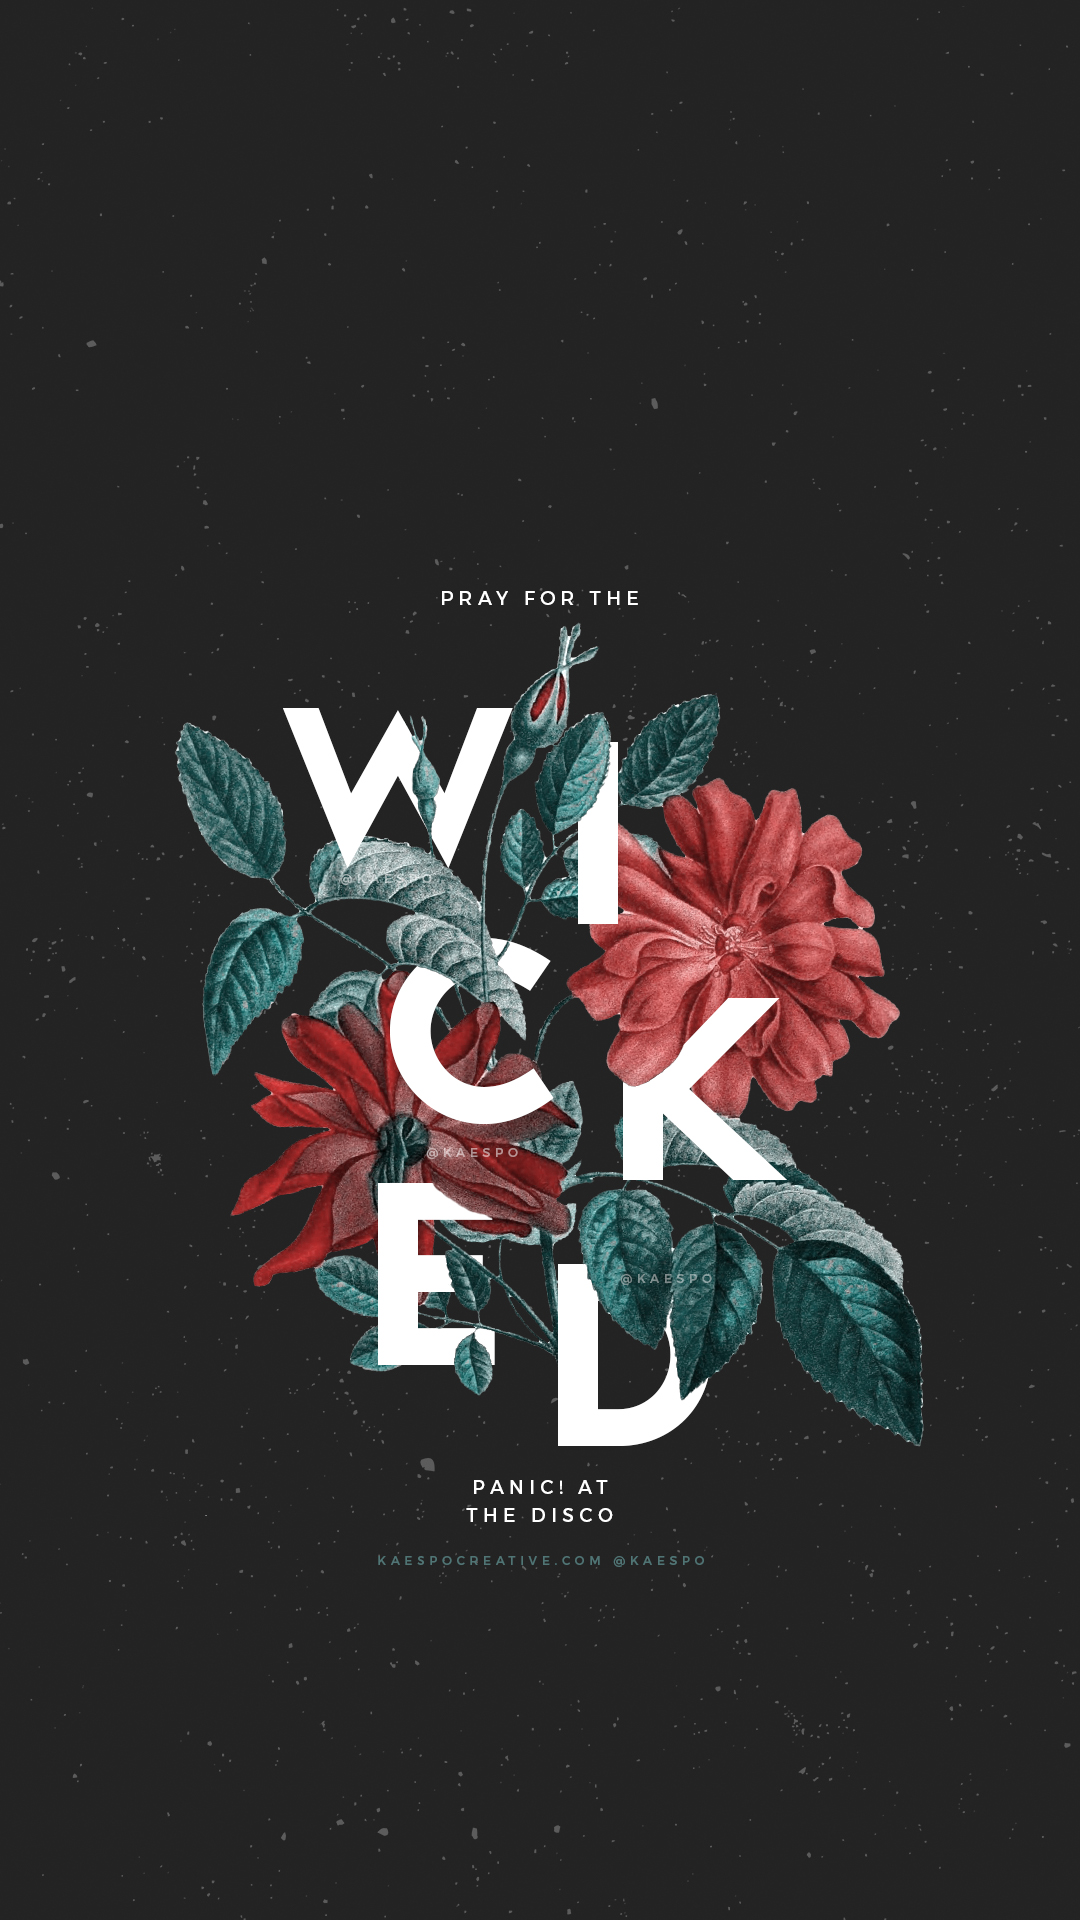 Pray+For+The+Wicked+Lockscreen+Floral+Backgrounds+%7C+Design+by+KAESPO